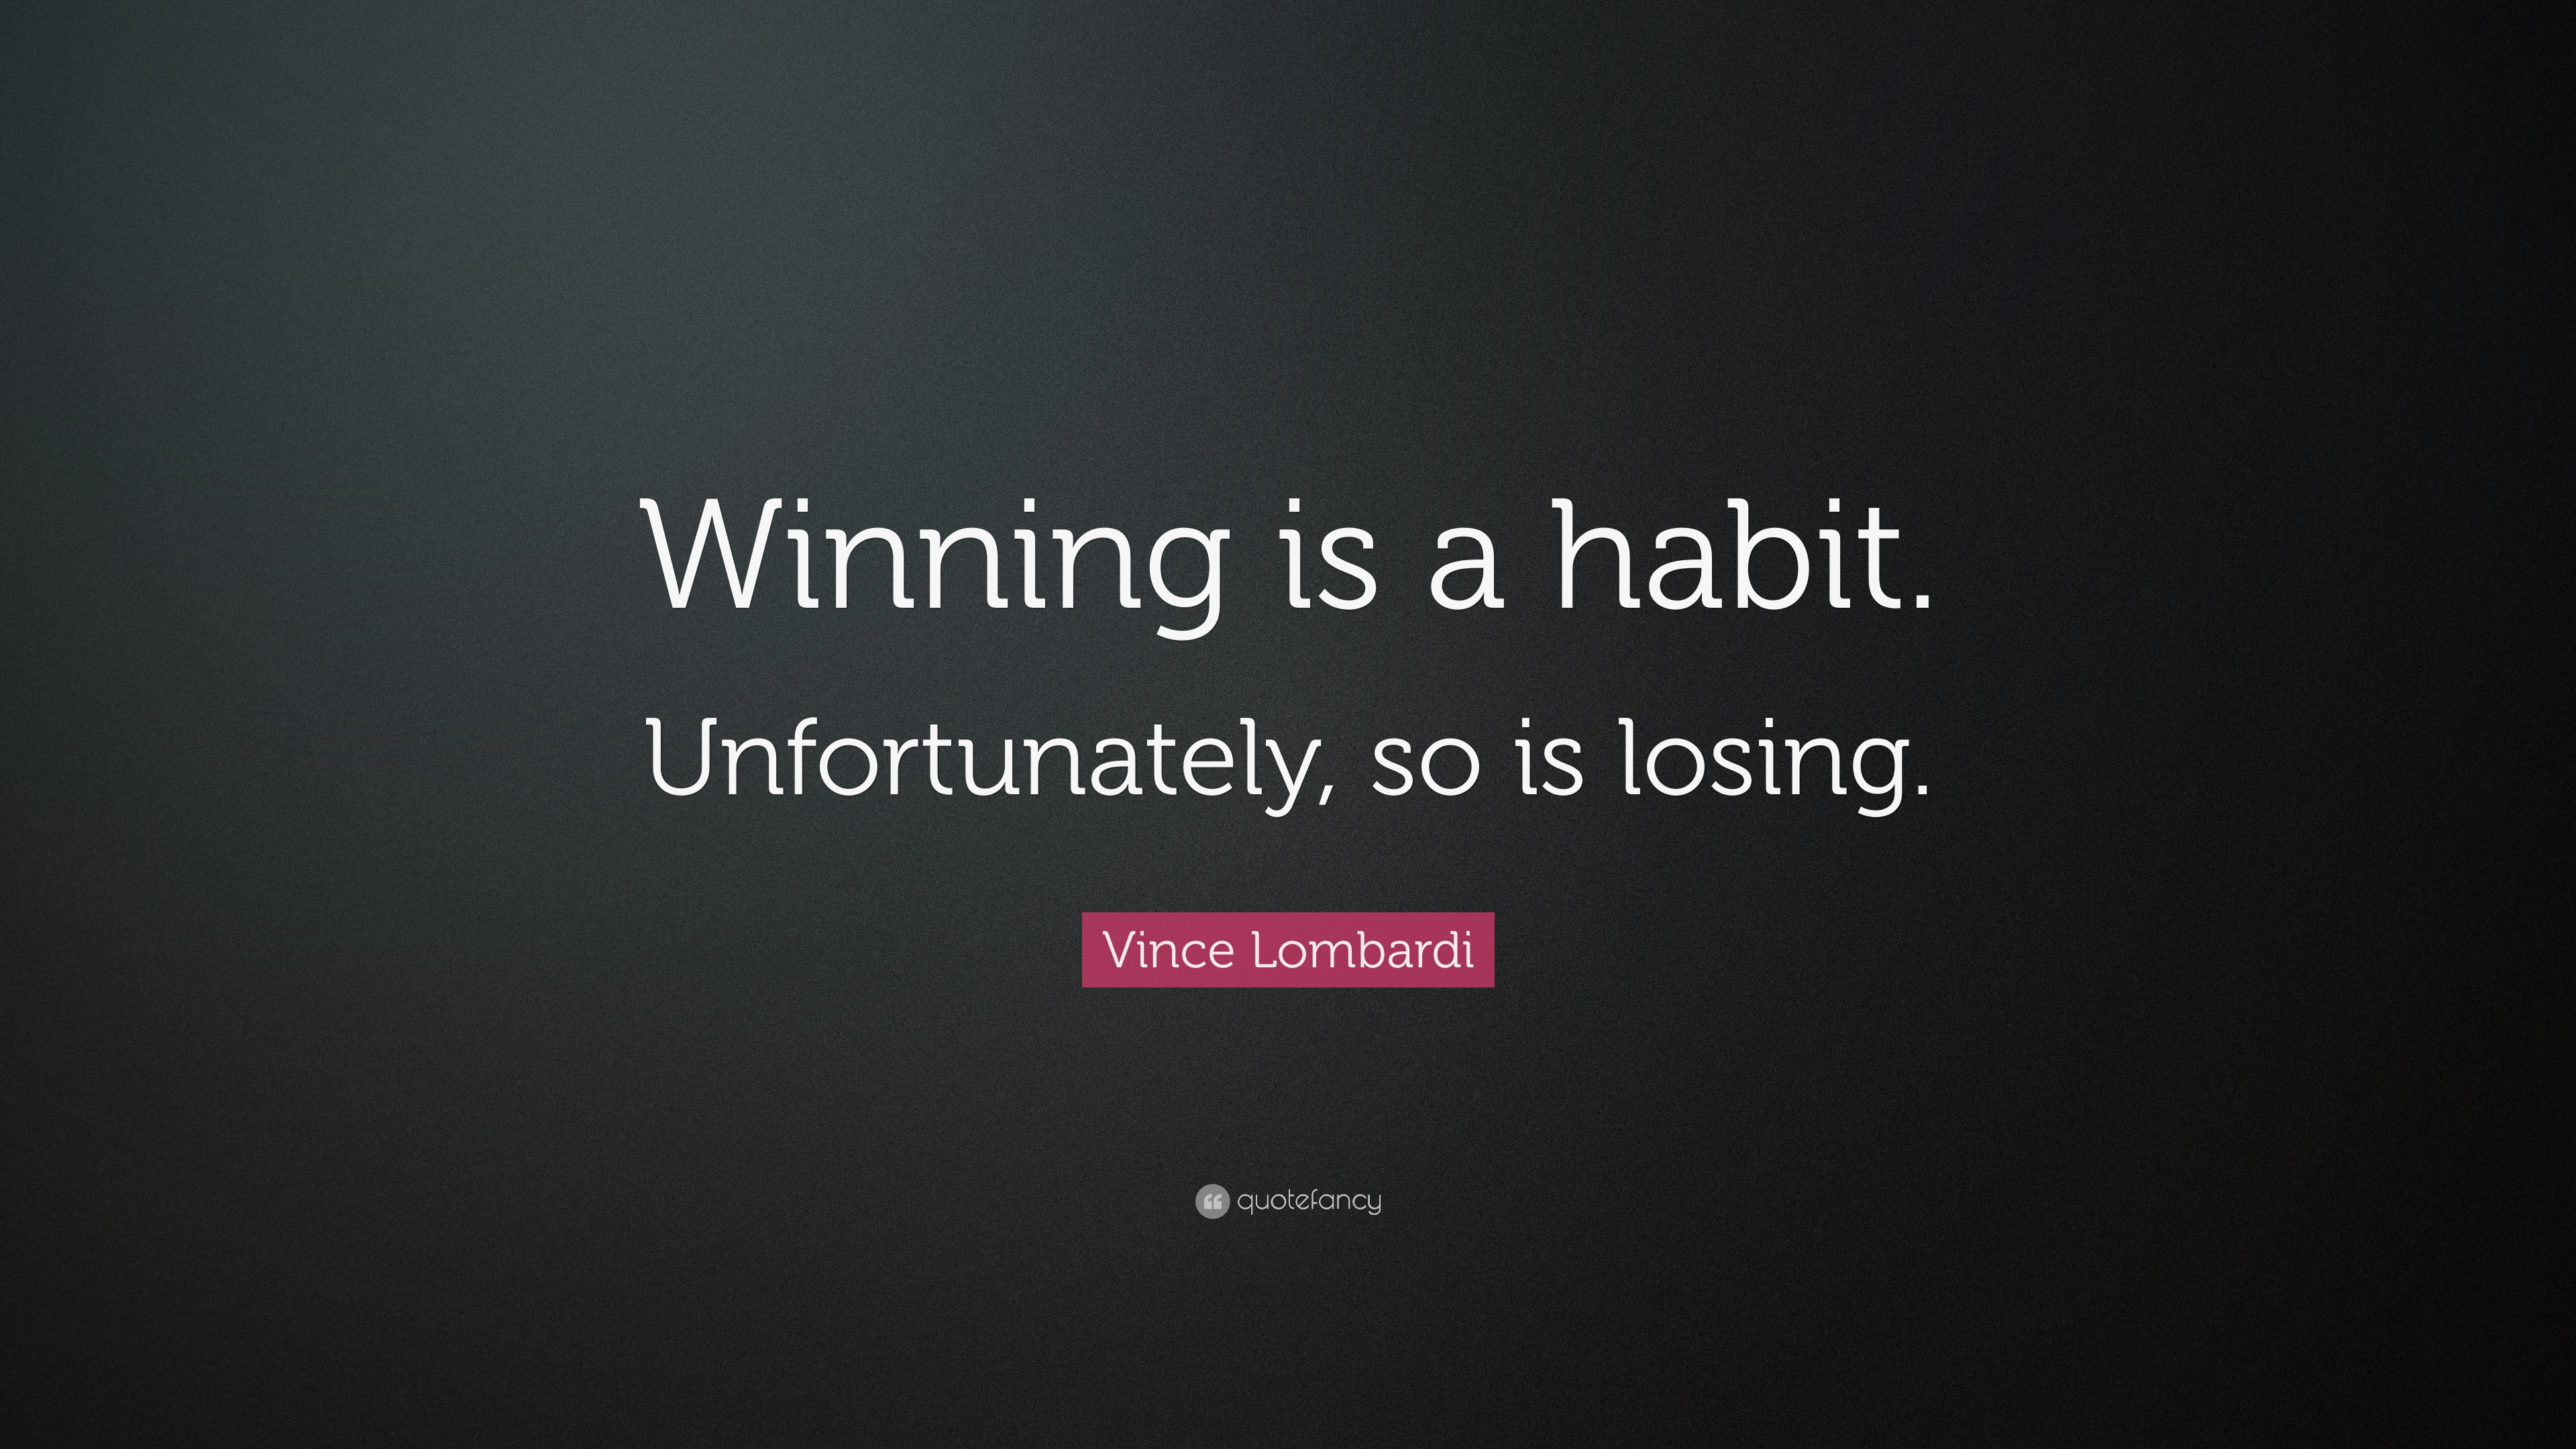 Vince Lombardi Quotes Winning